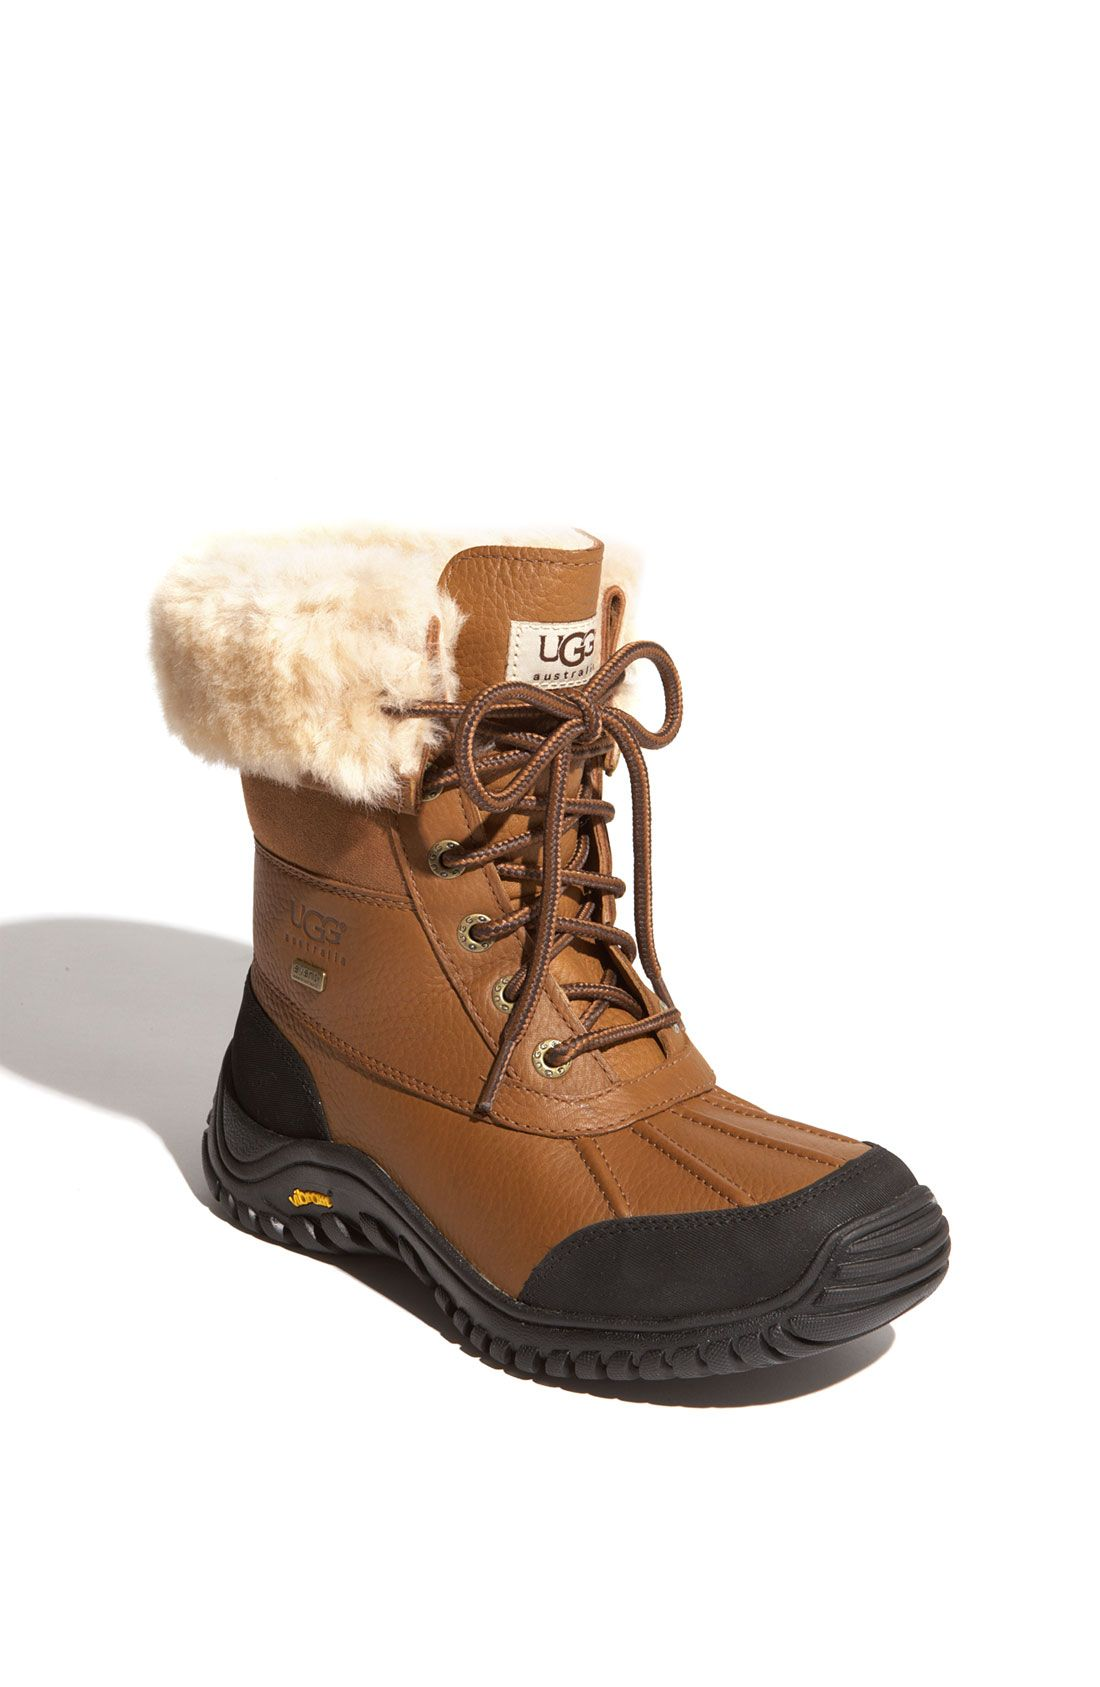 waterproof uggs 2016